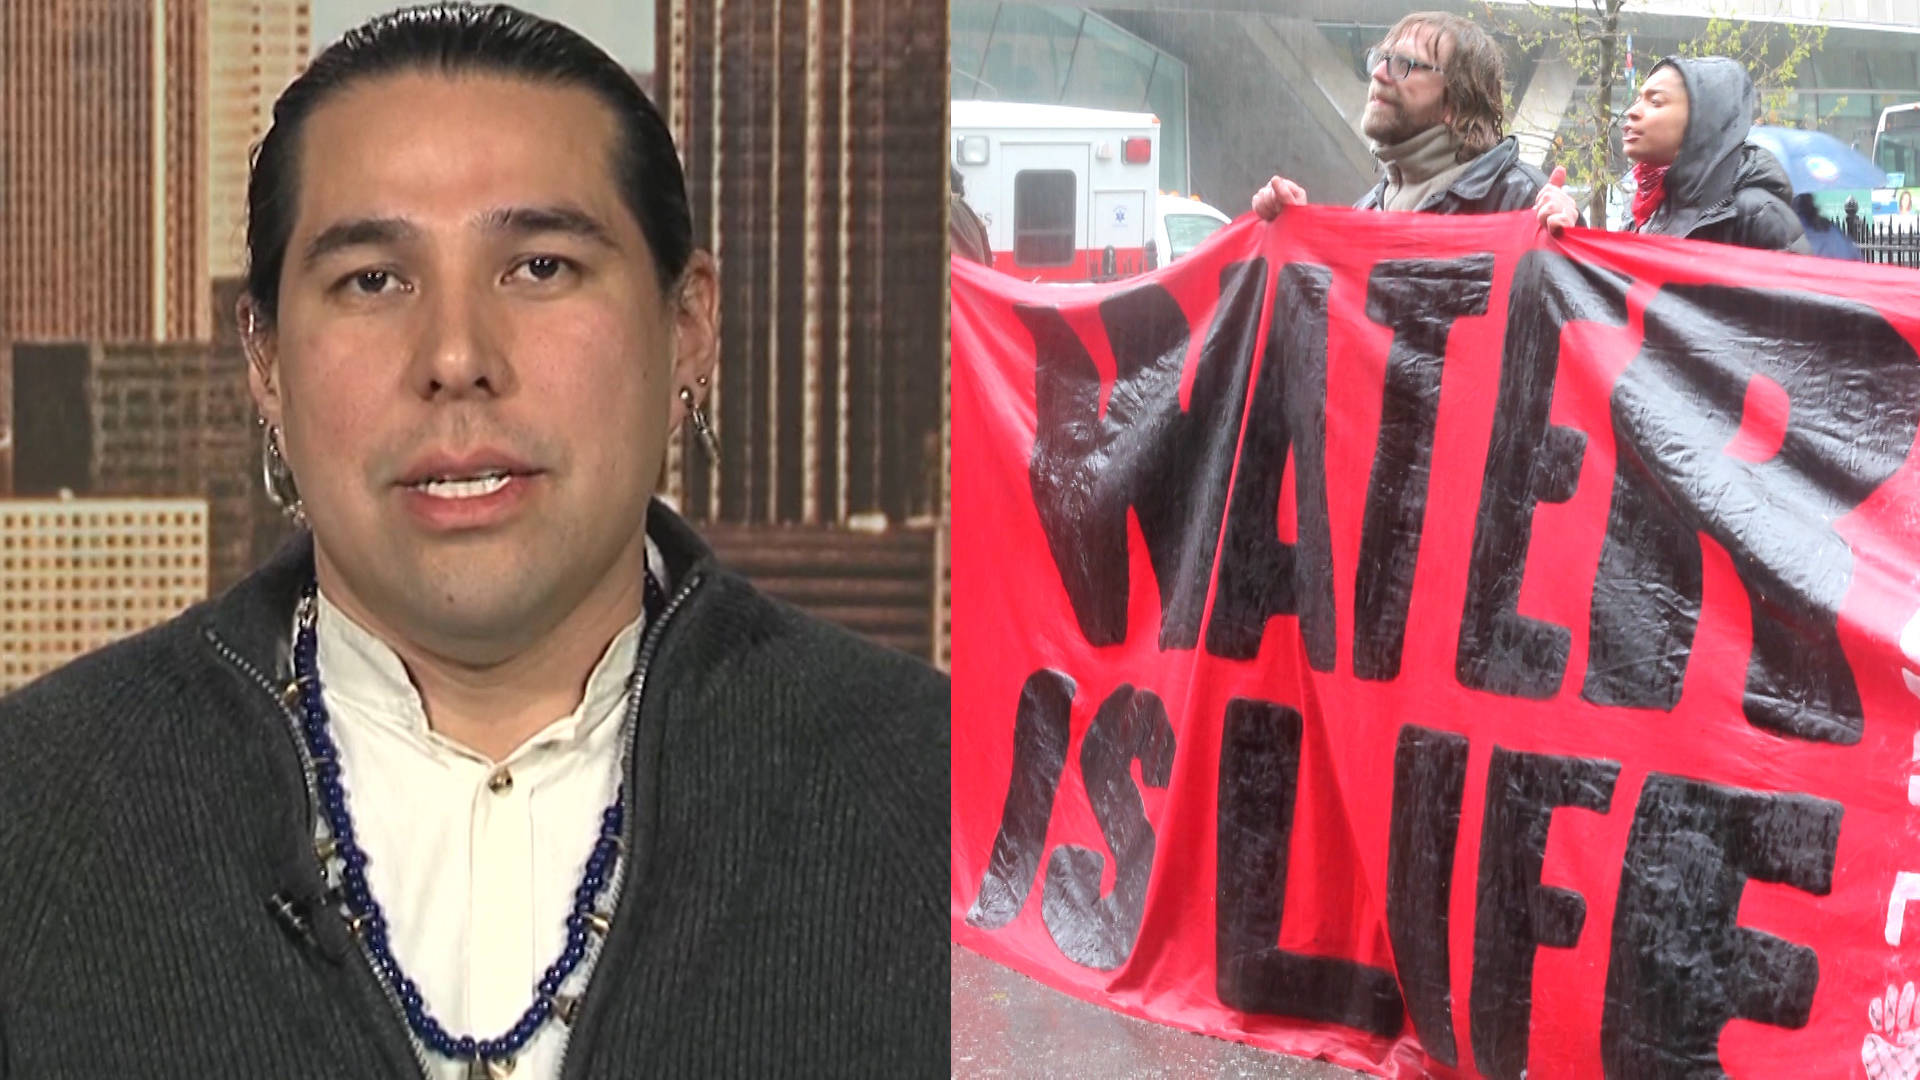 Dallas Goldtooth: Hold Banks Accountable for Financing Climate Chaos & Violating Indigenous Rights